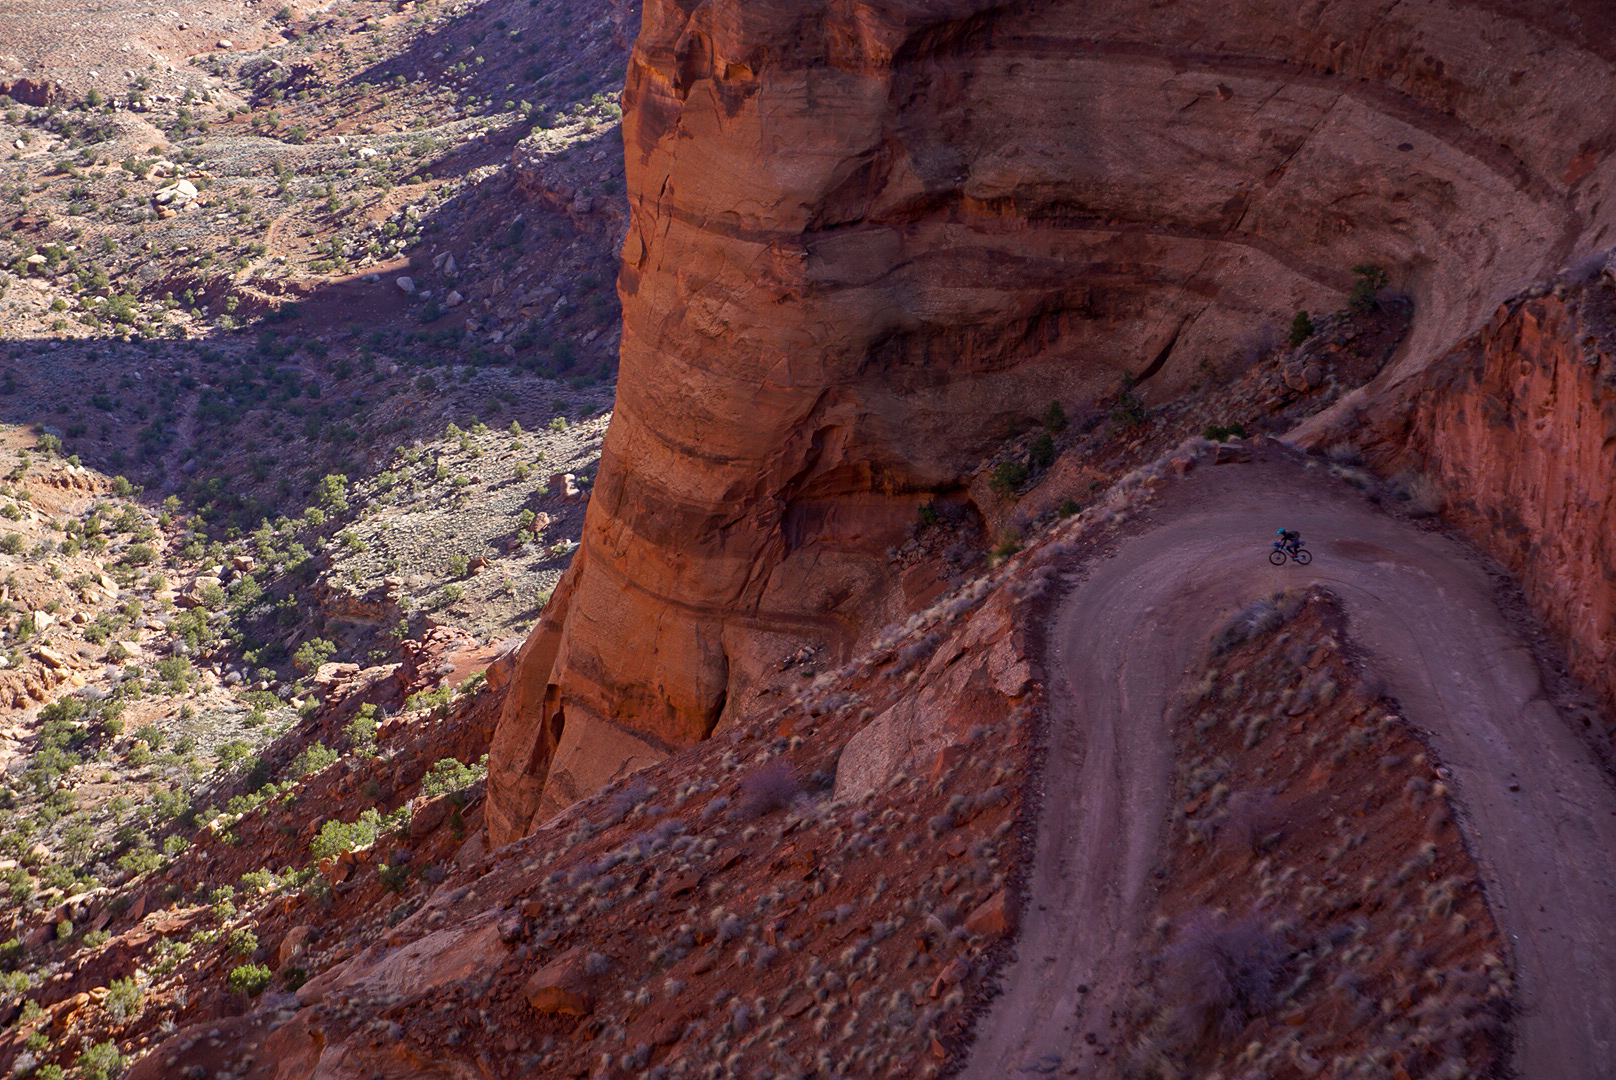 Bikepacking: The White Rim Trail